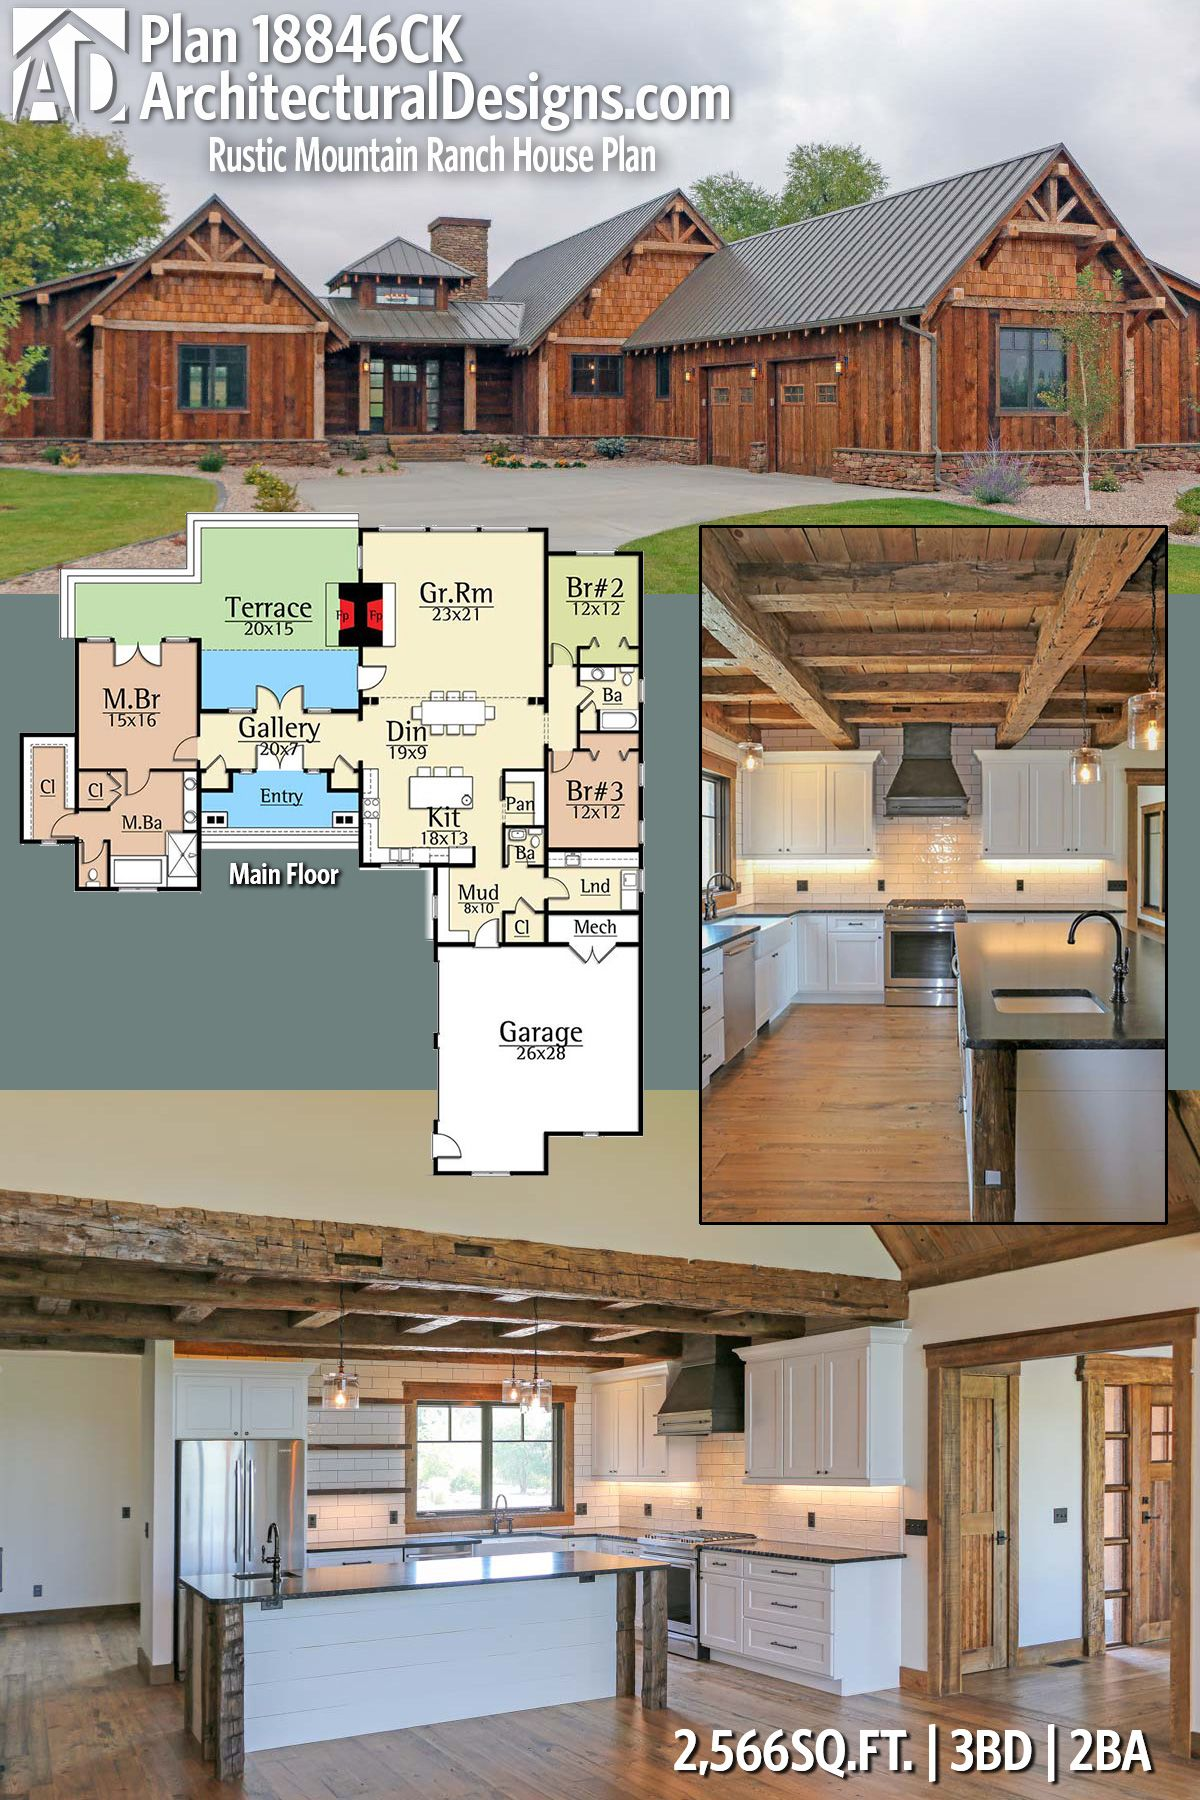 Plan 18846CK: Rustic Mountain Ranch House Plan | Mountain house ...